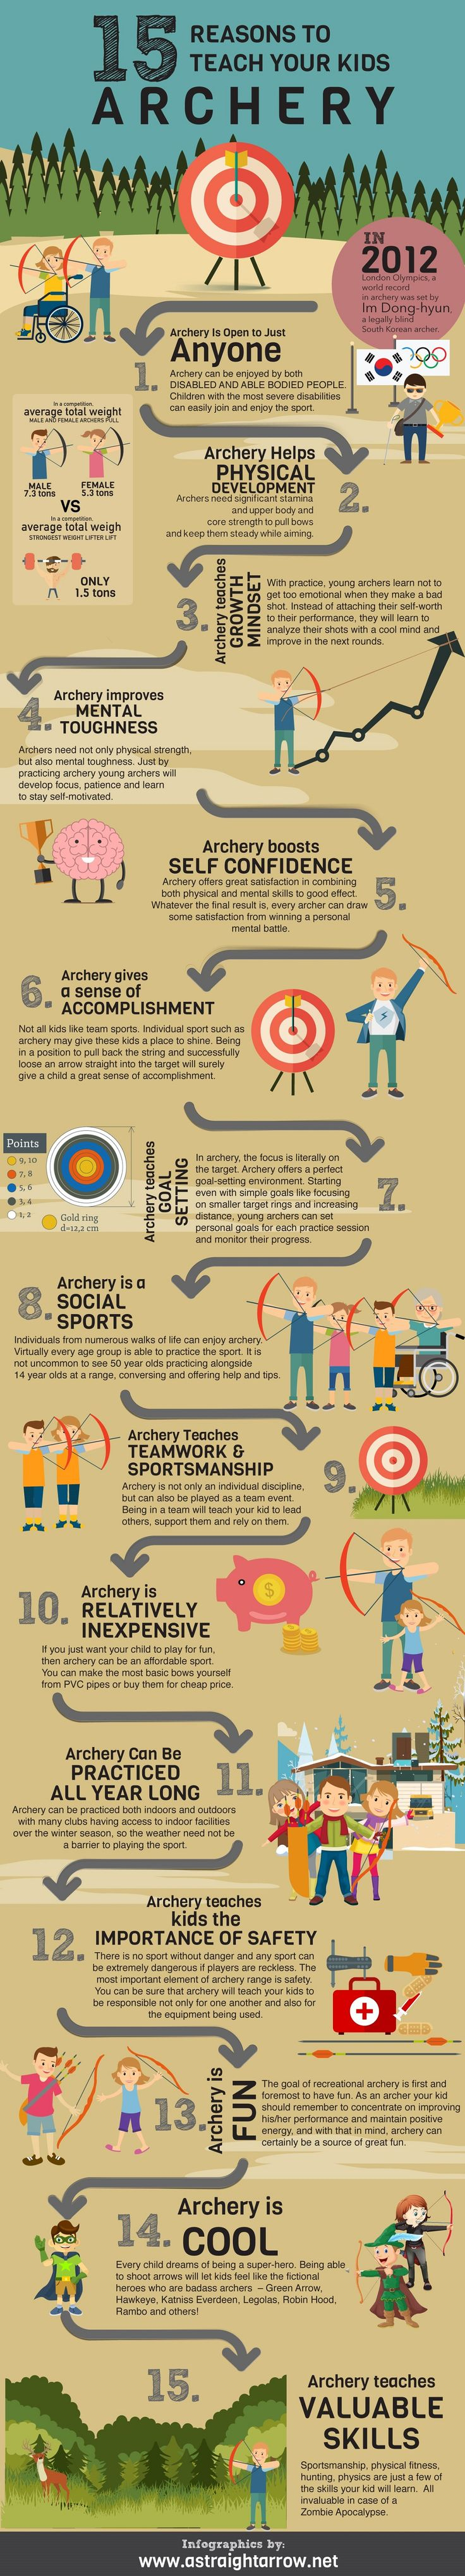 15 Reasons to Teach Your Kids Archery #Infographic #Kids #Sports